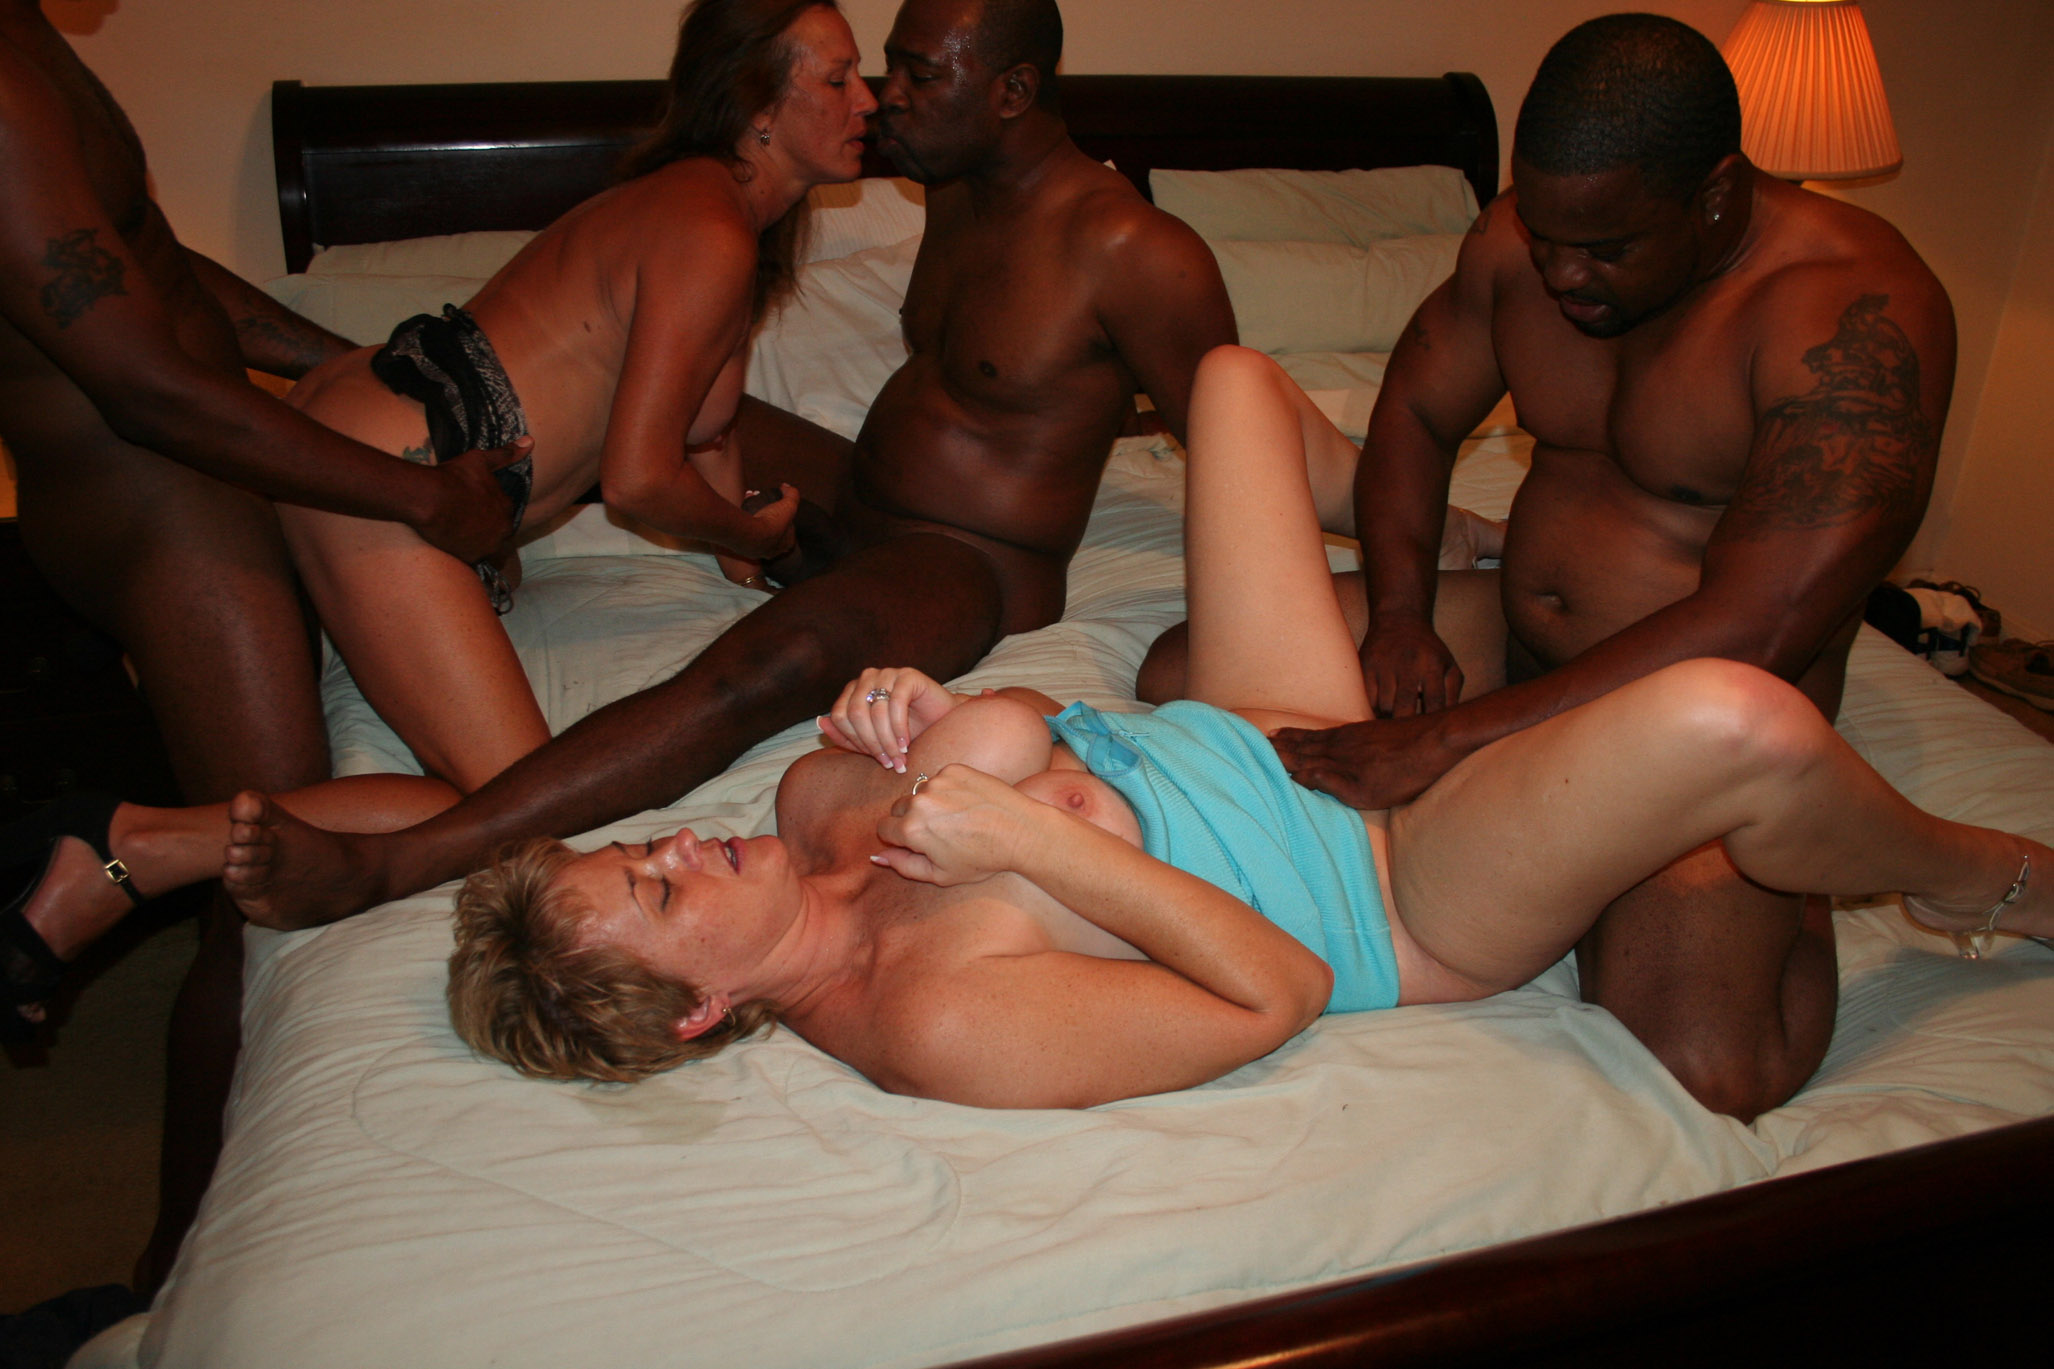 best interracial video women looking for men to fuck